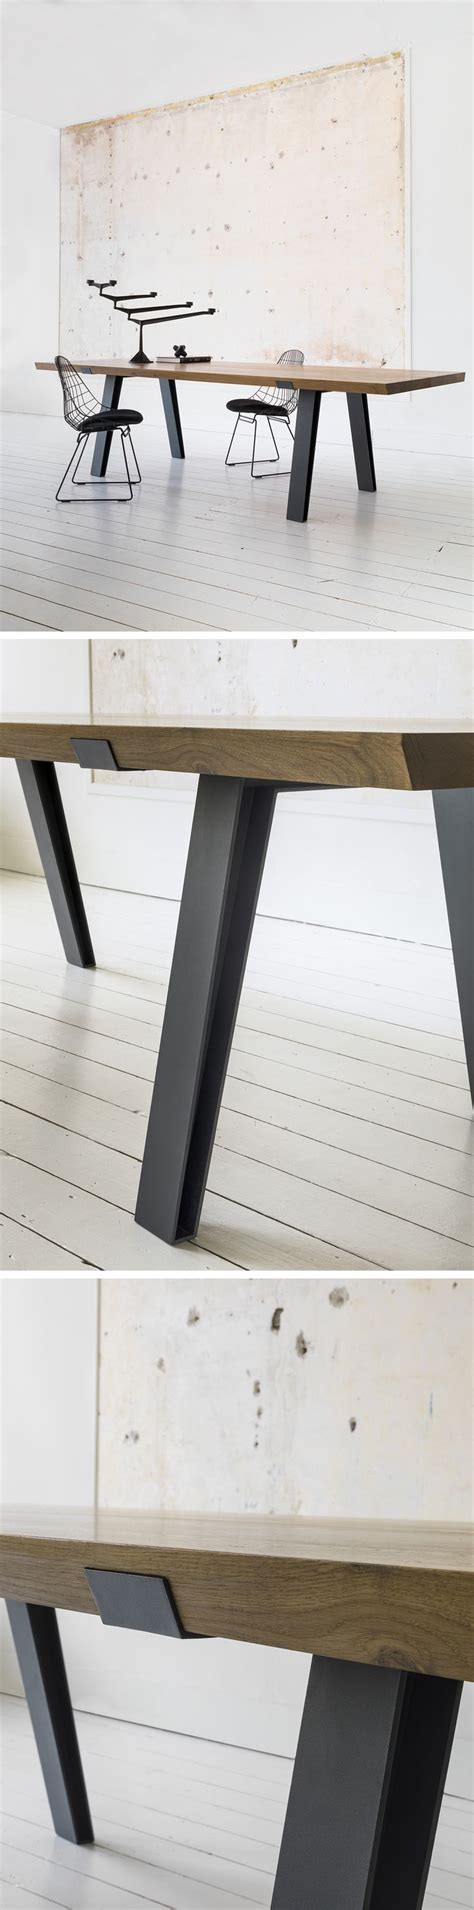 how to table legs 25 best ideas about table legs on diy table